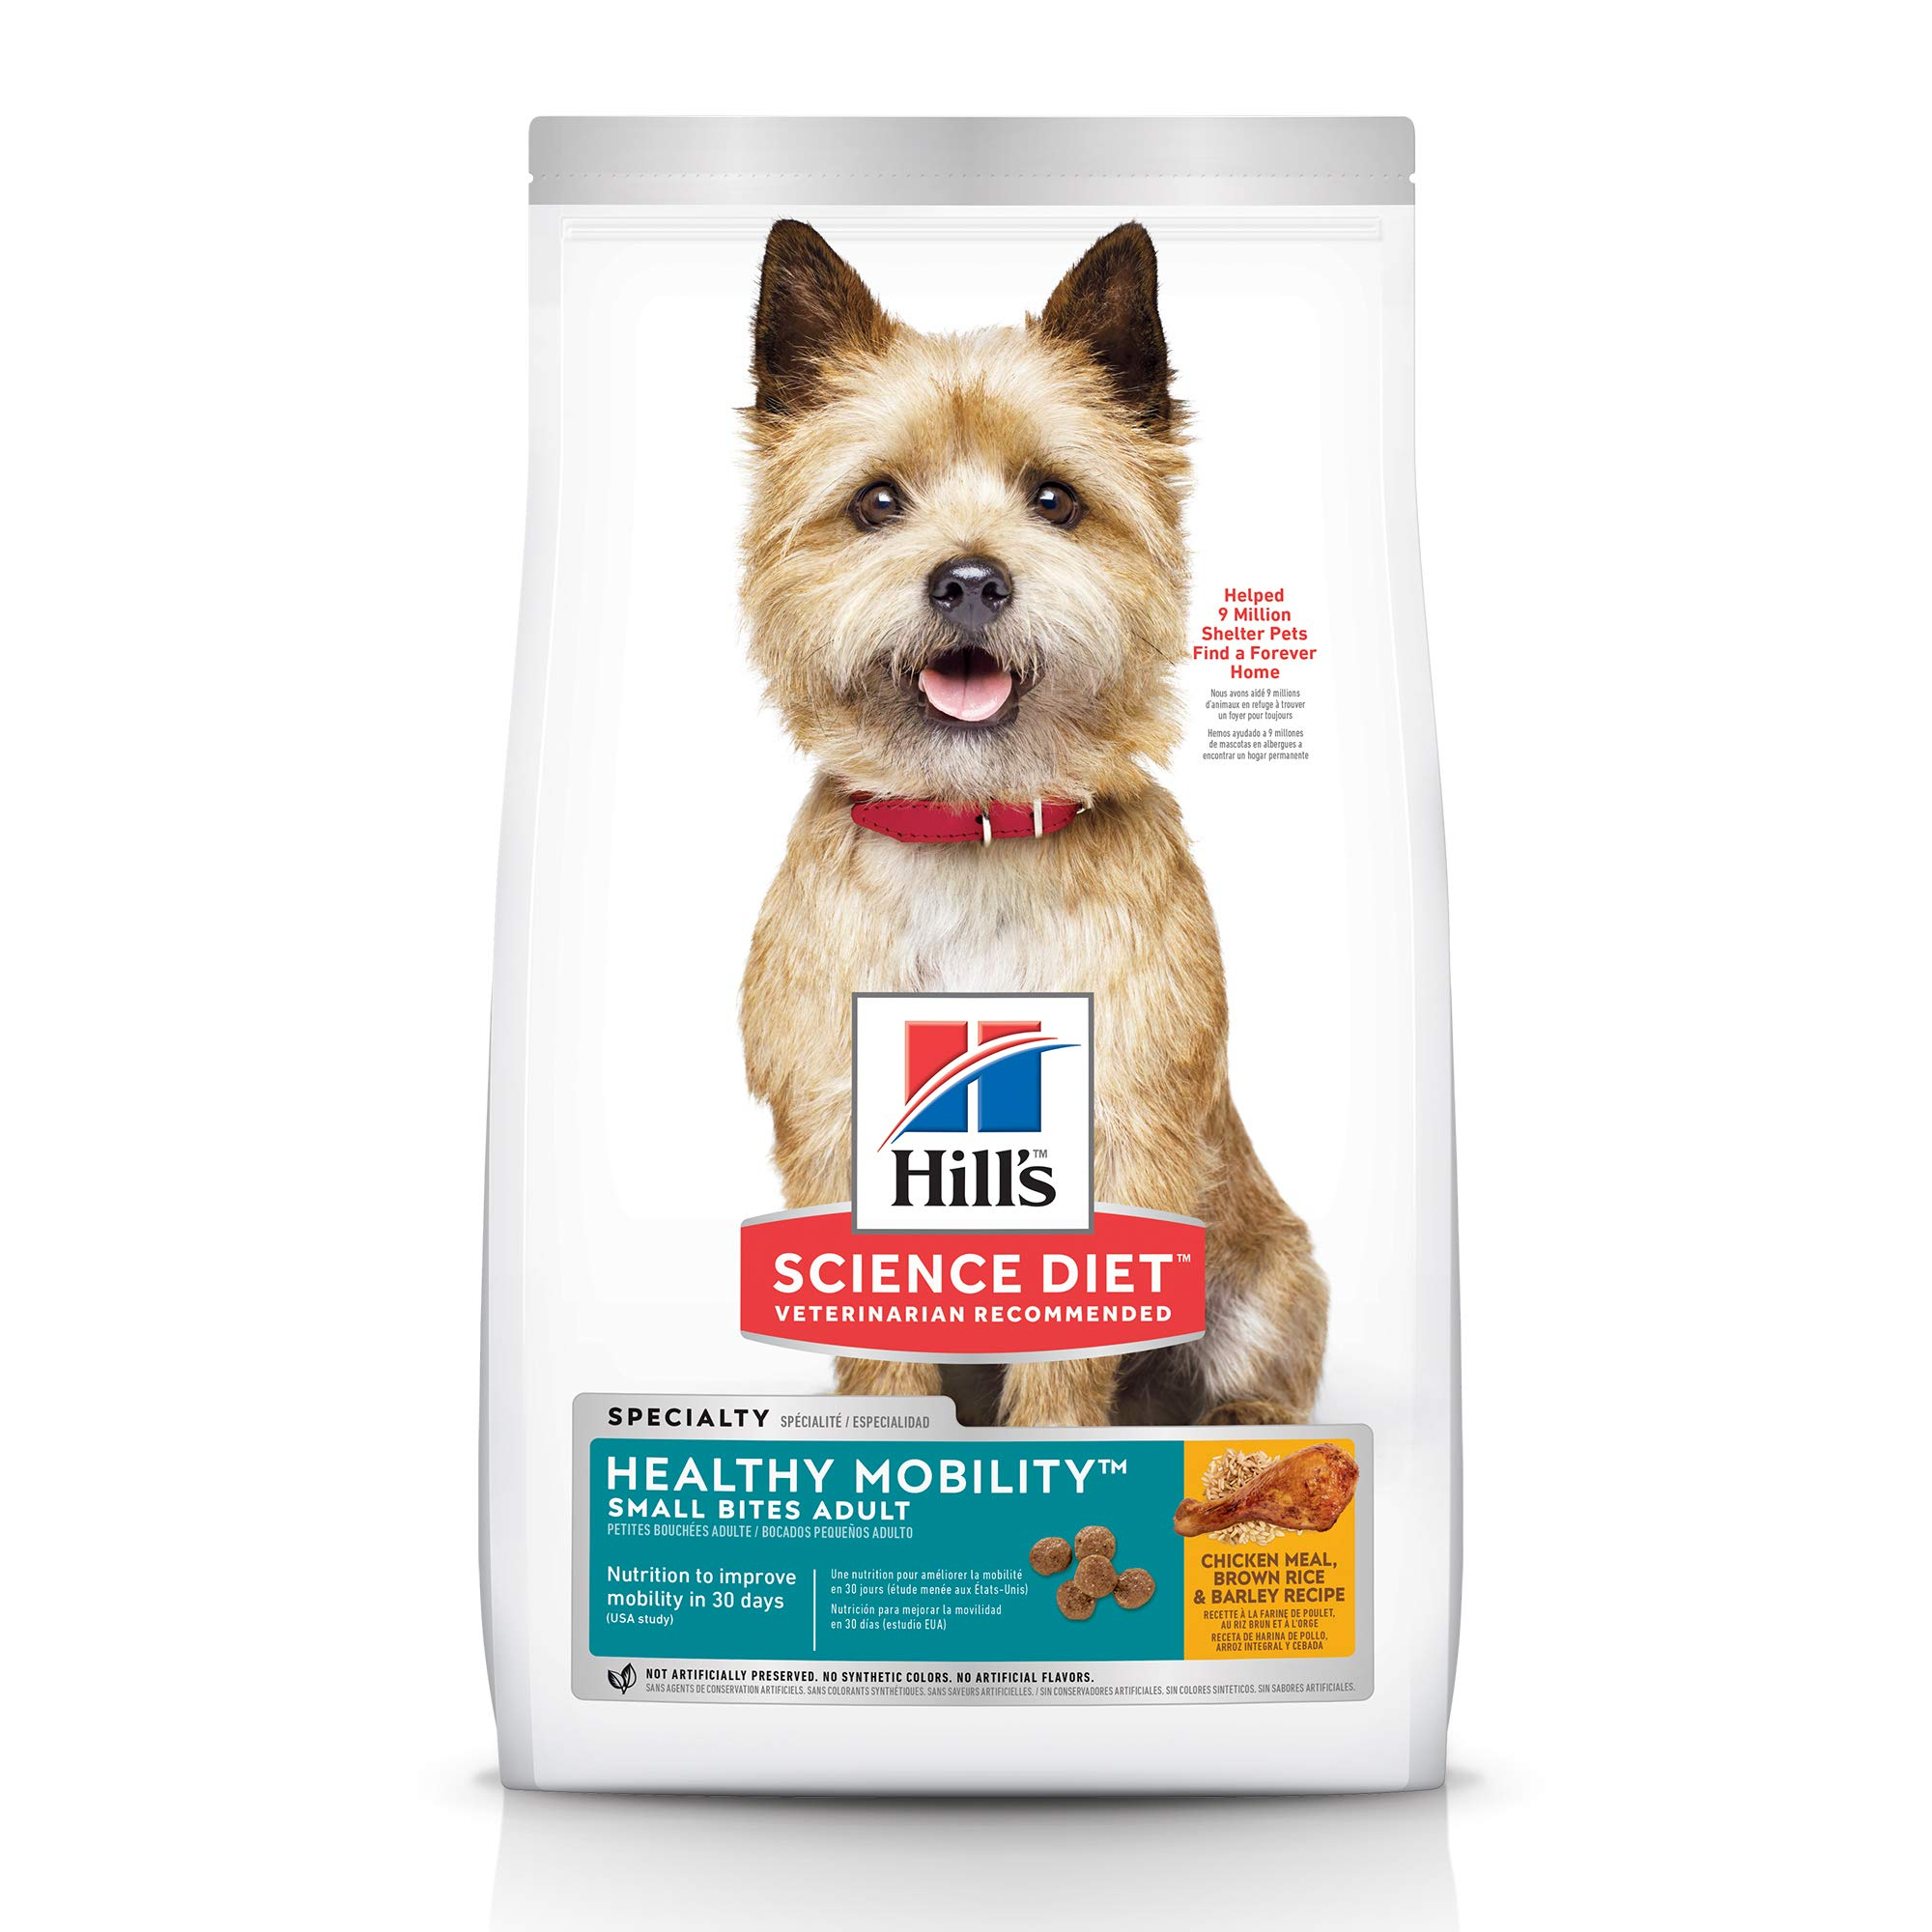 Hill's Science Diet Dry Dog Food, Adult, Healthy Mobility Small Bites, Chicken Meal, Brown Rice & Barley Recipe, 30 lb Bag by Hill's Science Diet